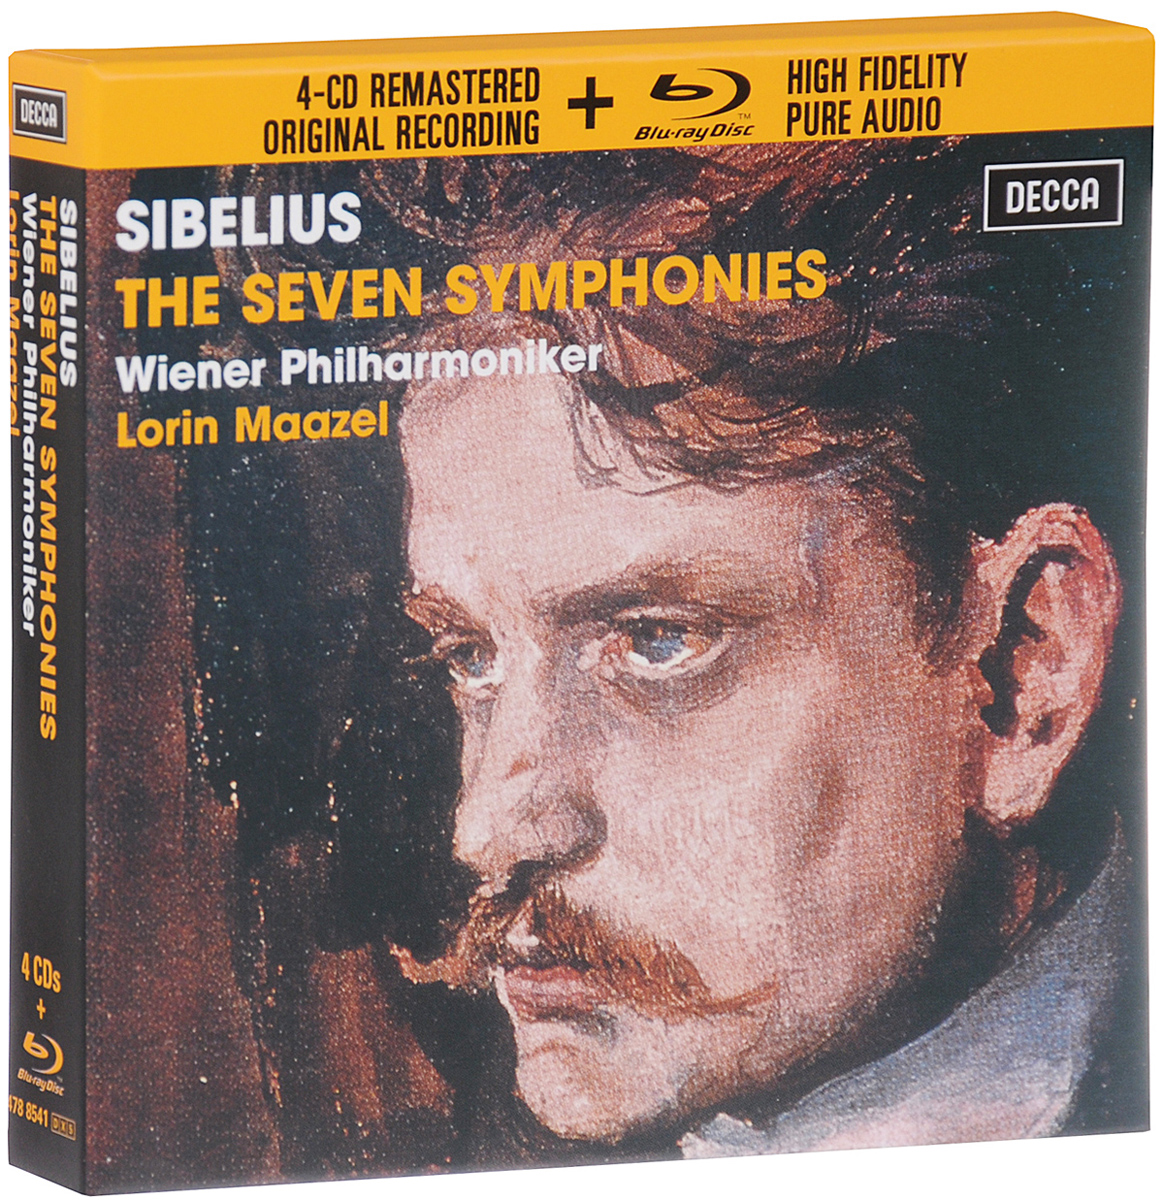 Лорин Маазель,Wiener Philharmoniker Lorin Maazel. Sibelius. The Seven Symphonies. Limited Edition (4 CD + Blu-Ray Audio)